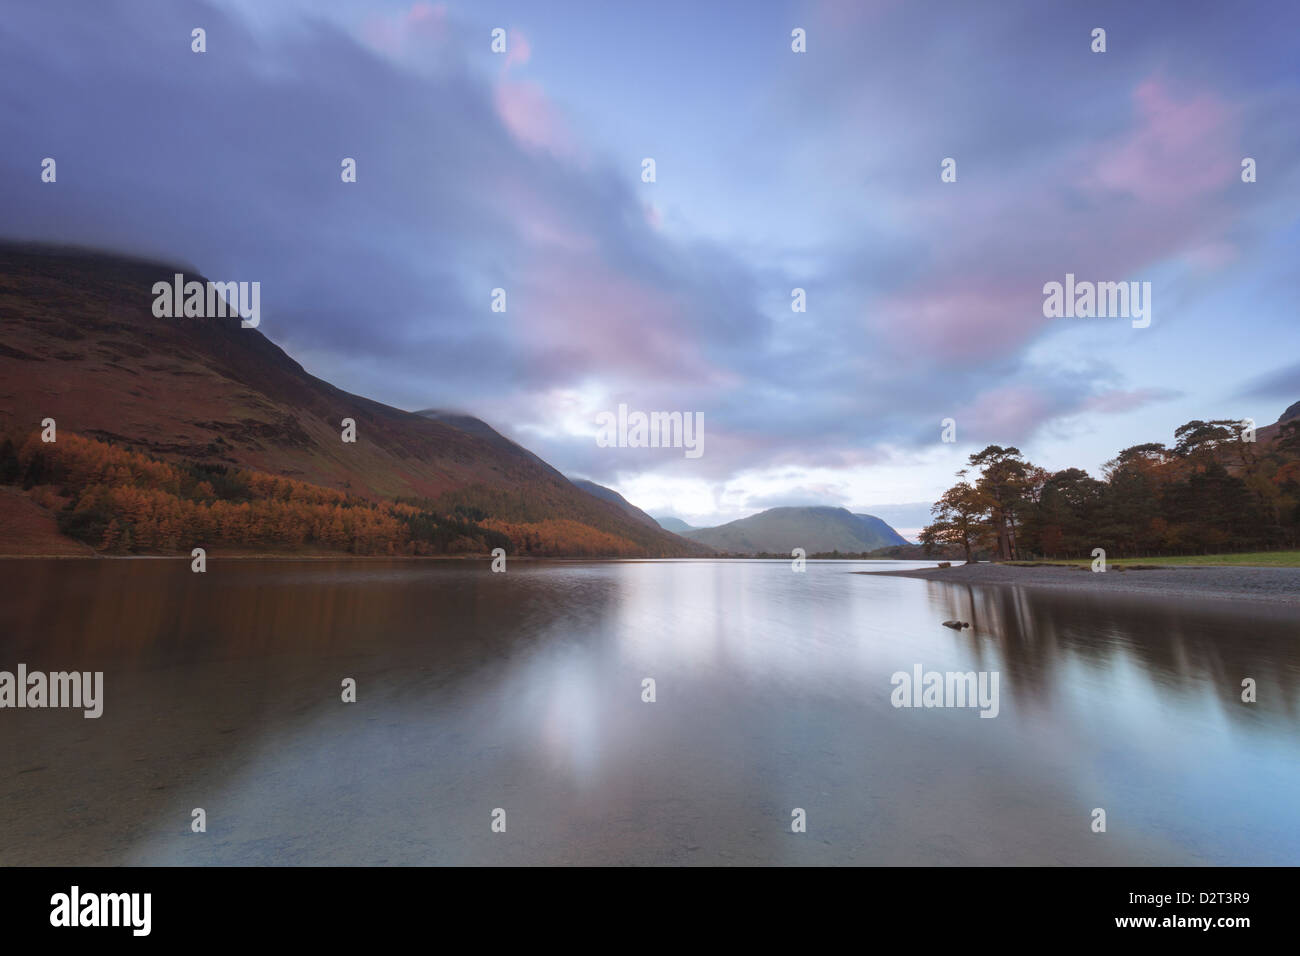 Buttermere au crépuscule, Parc National de Lake District, Cumbria, Angleterre, Royaume-Uni, Europe Banque D'Images